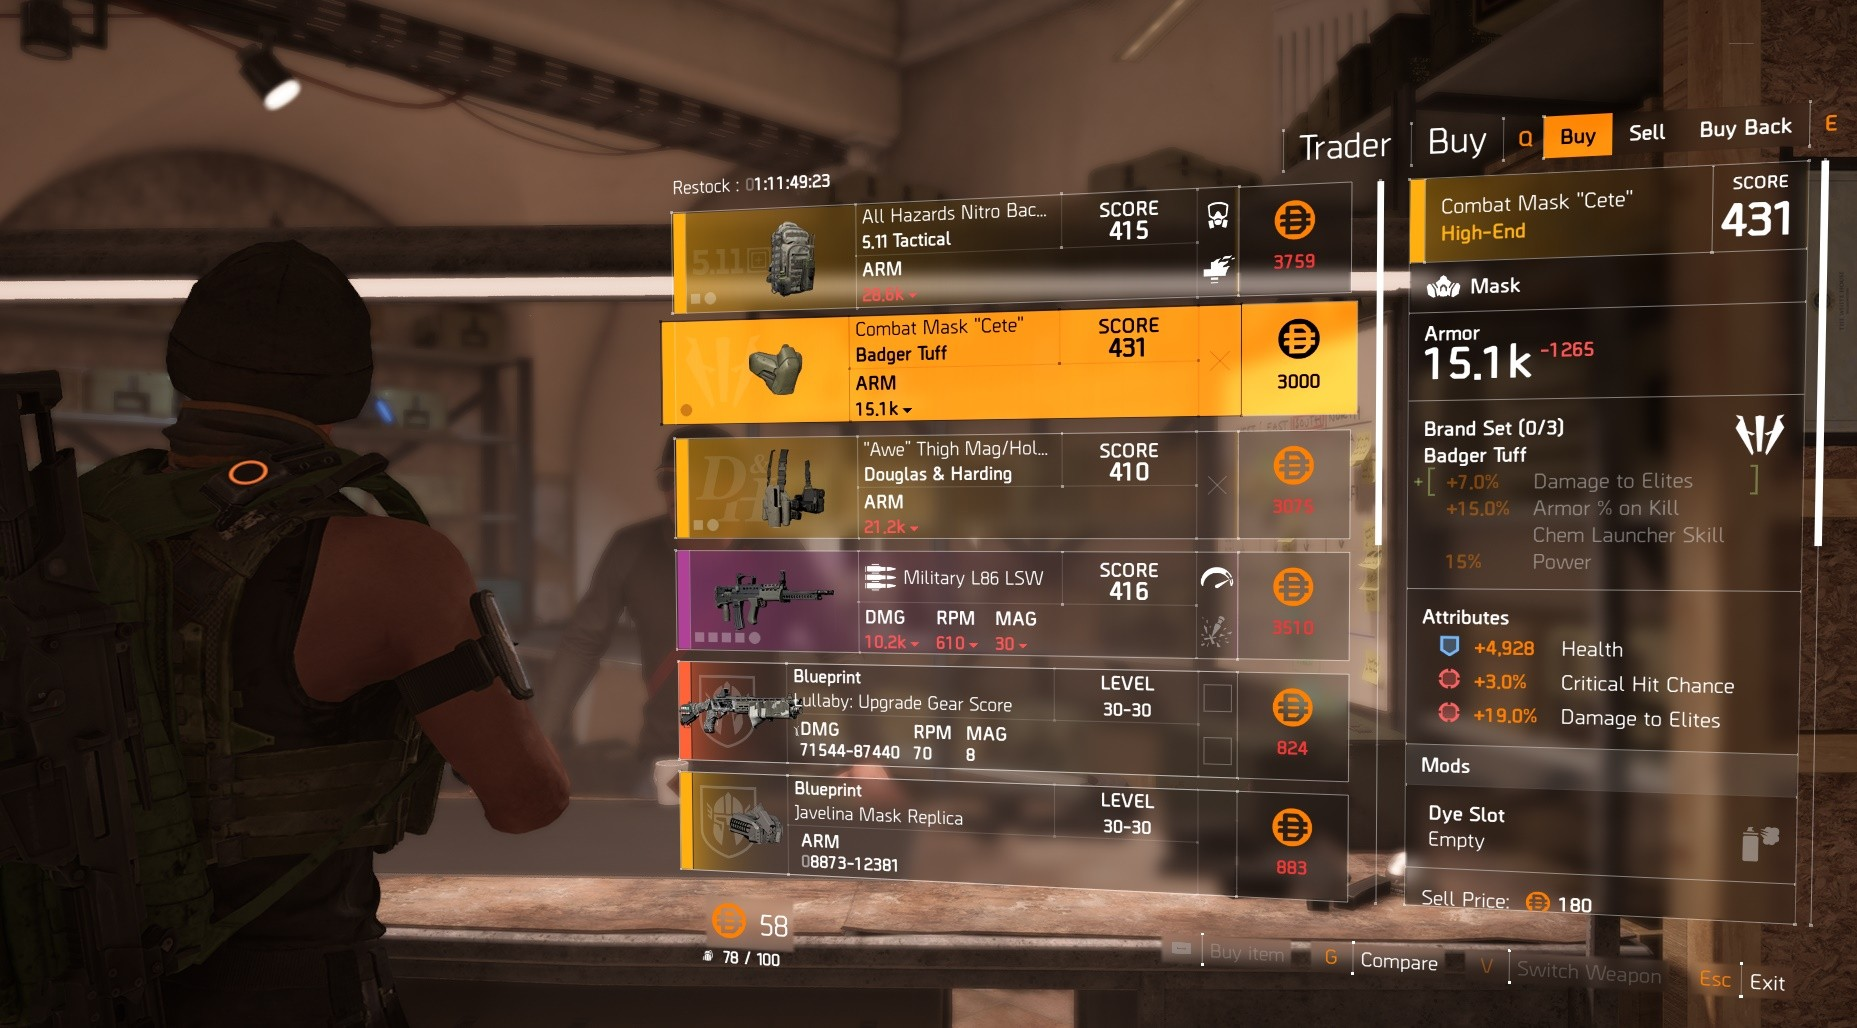 The Division 2 Endgame Guide: Best Ways to Raise Your Gear